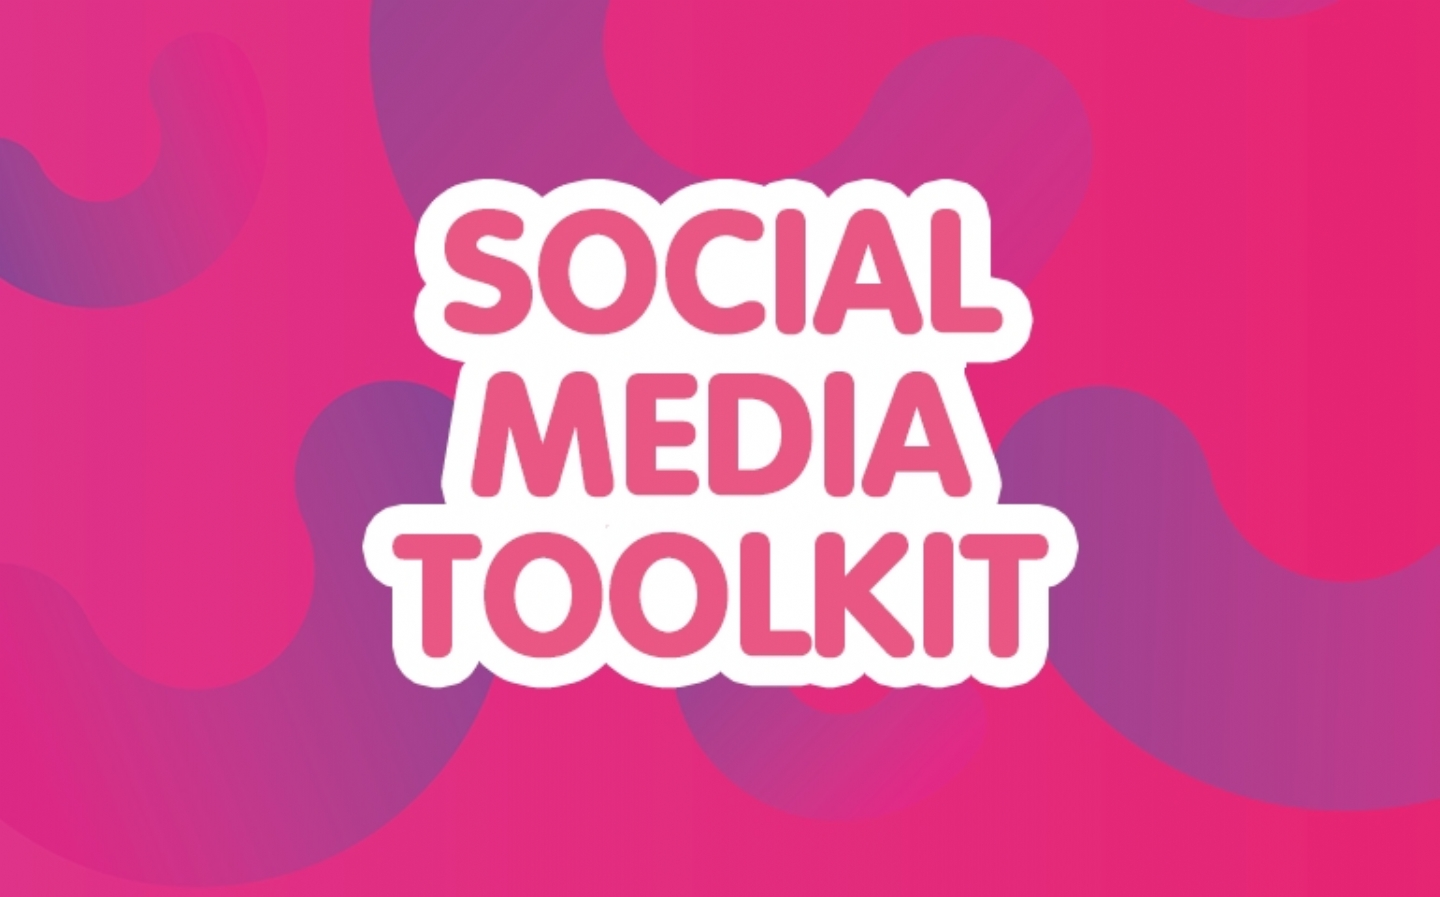 Improve your social media presence with help from Keycraft